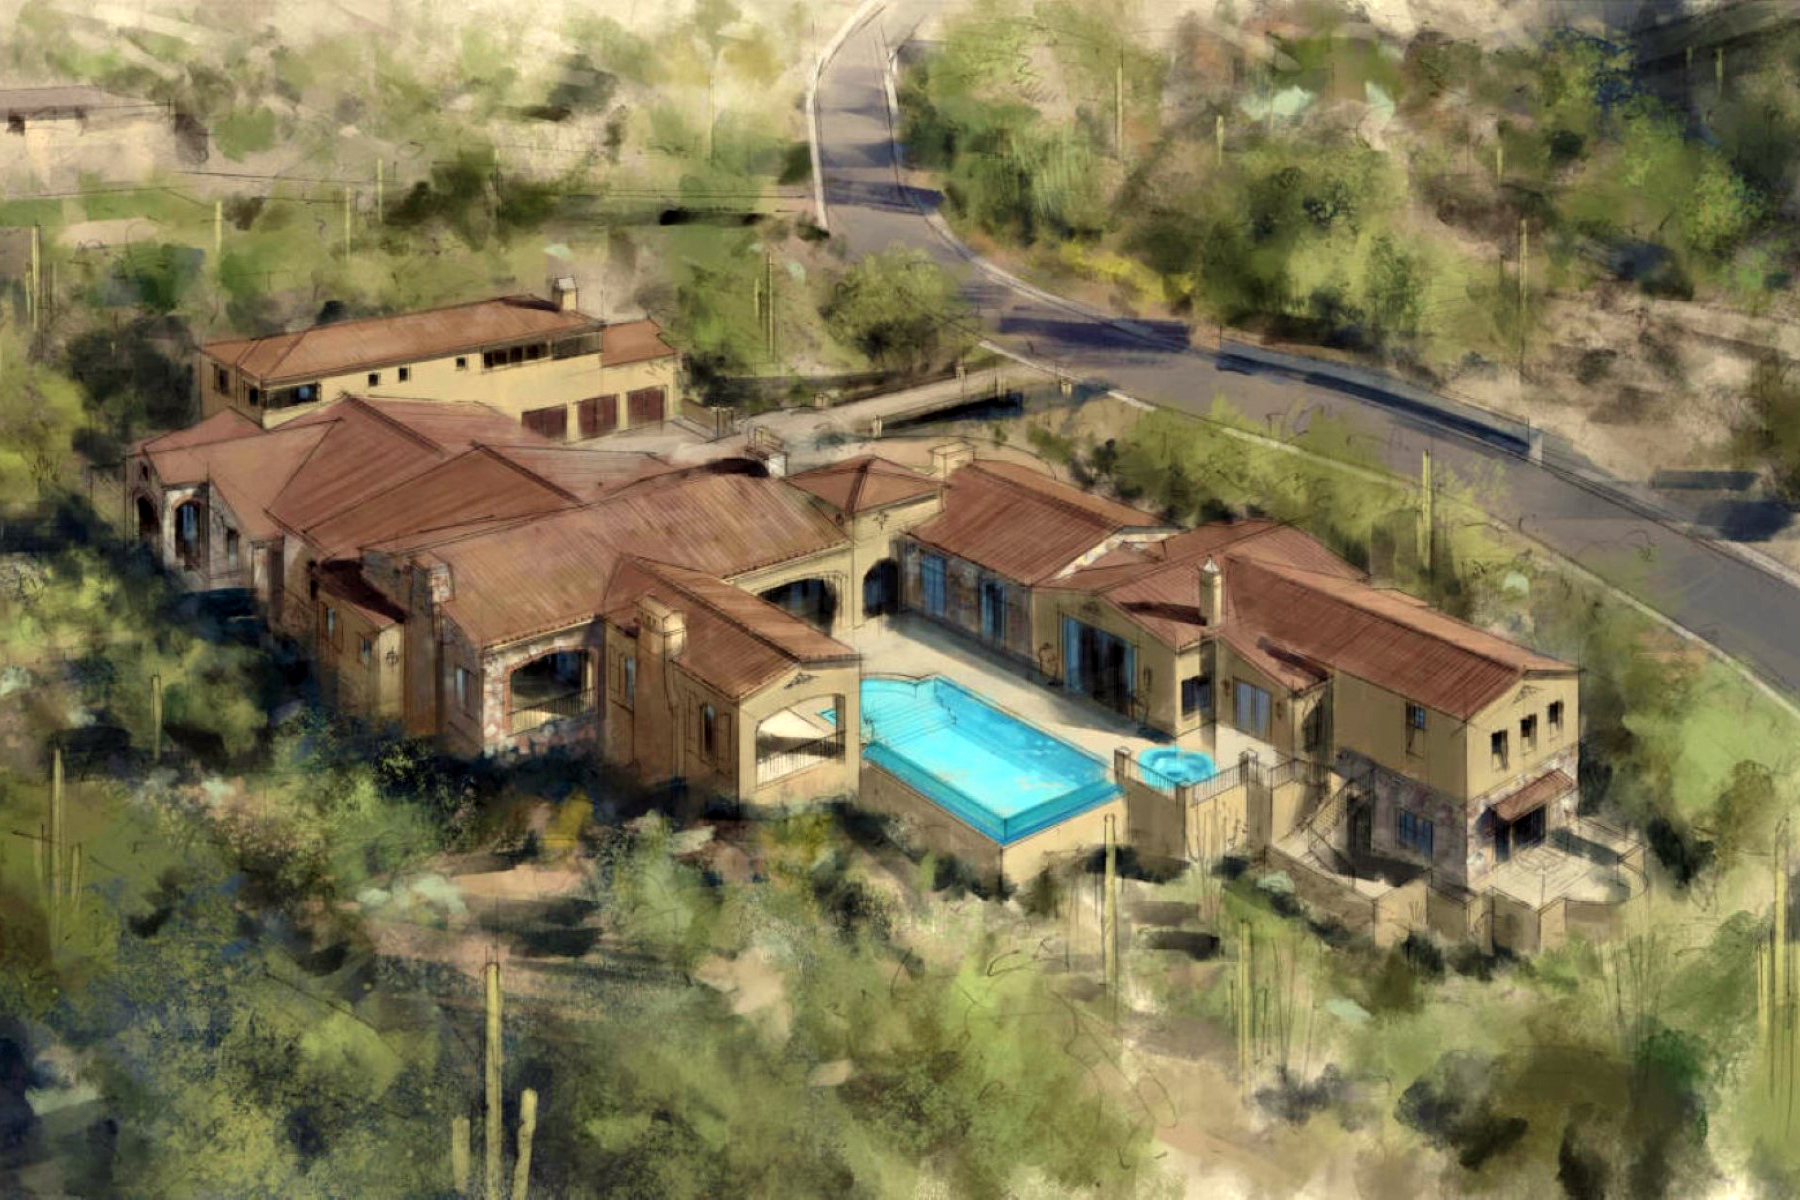 Maison unifamiliale pour l Vente à Stunning Silverleaf Luxury New Build With Valley Views 11004 E Feathersong Lane Scottsdale, Arizona 85255 États-Unis